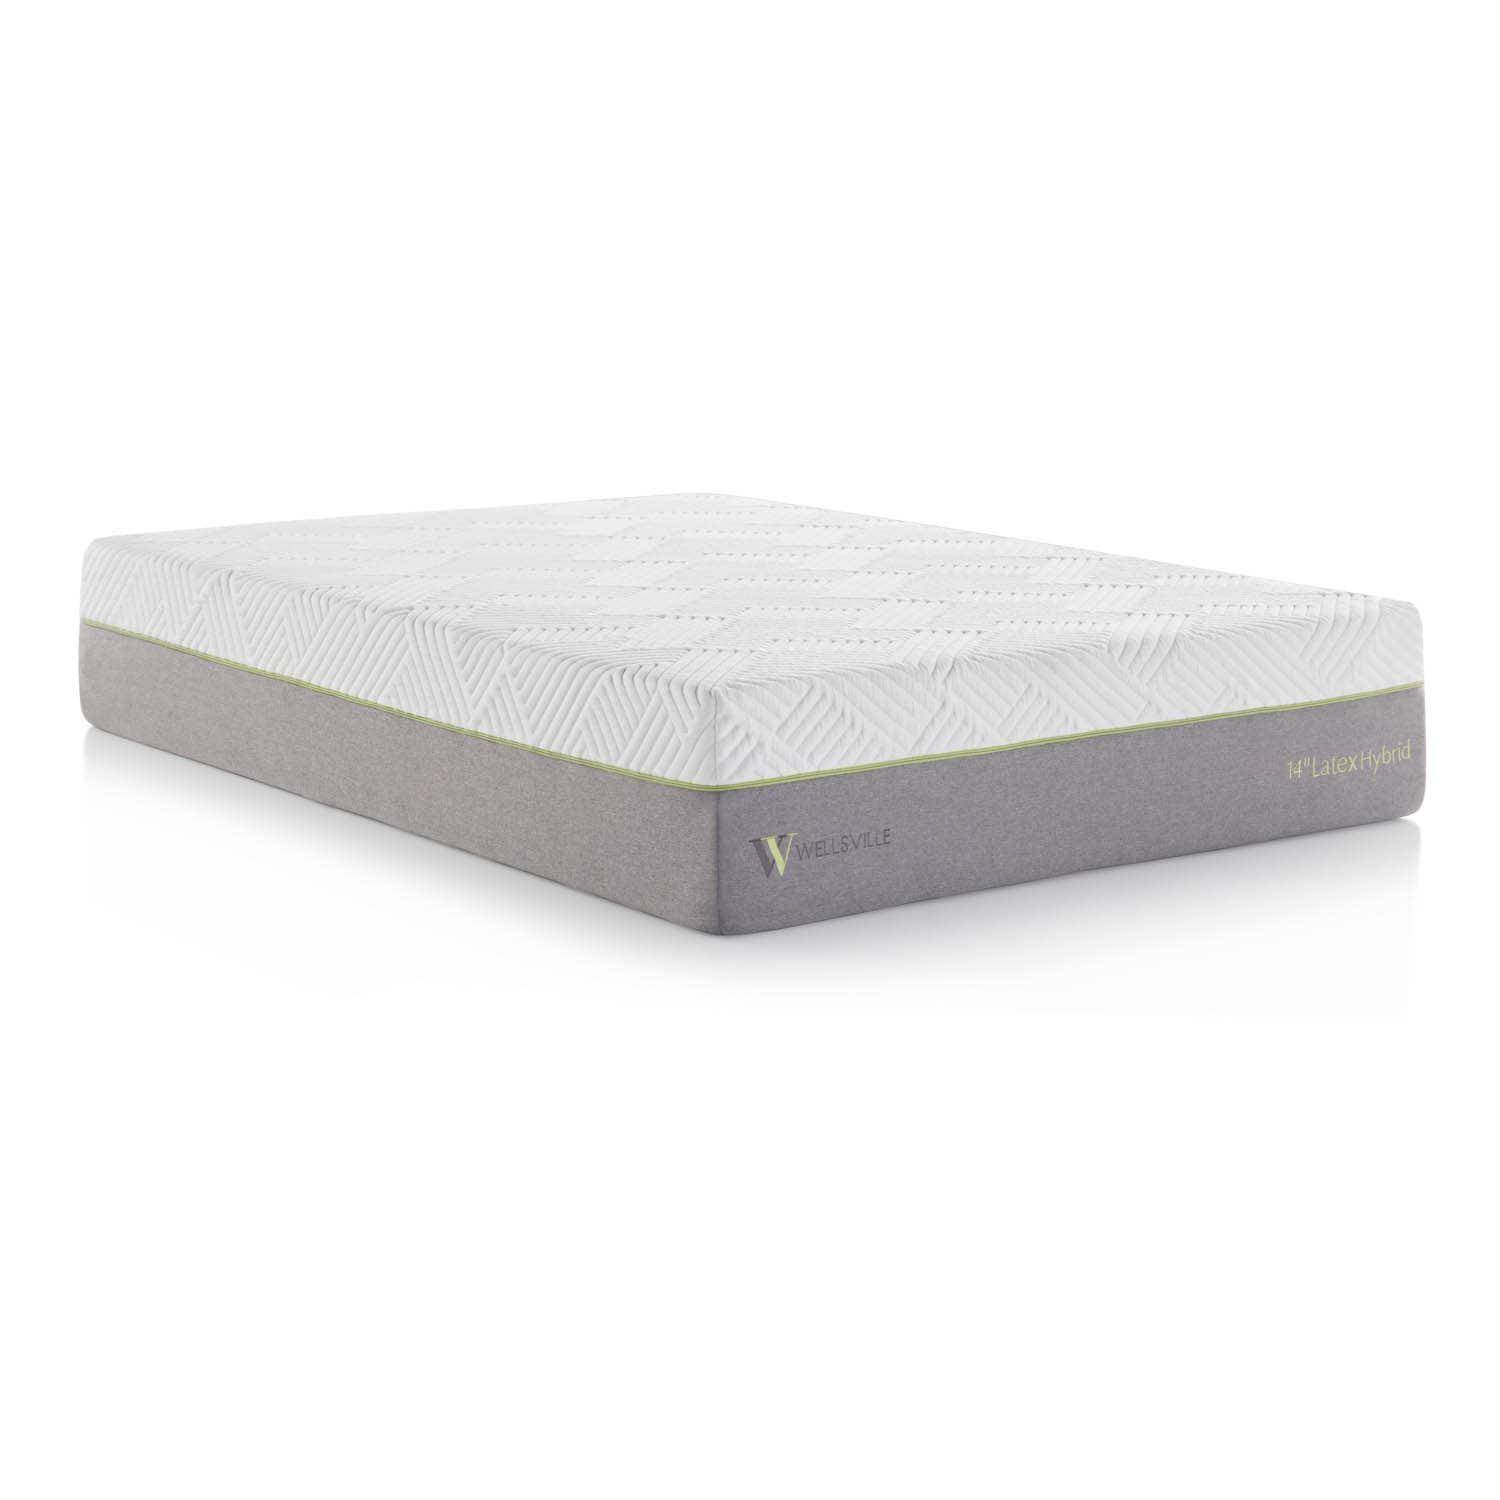 picture select hybrid nest the goodbed mattress medium organics bedding alexander reviews model signature com